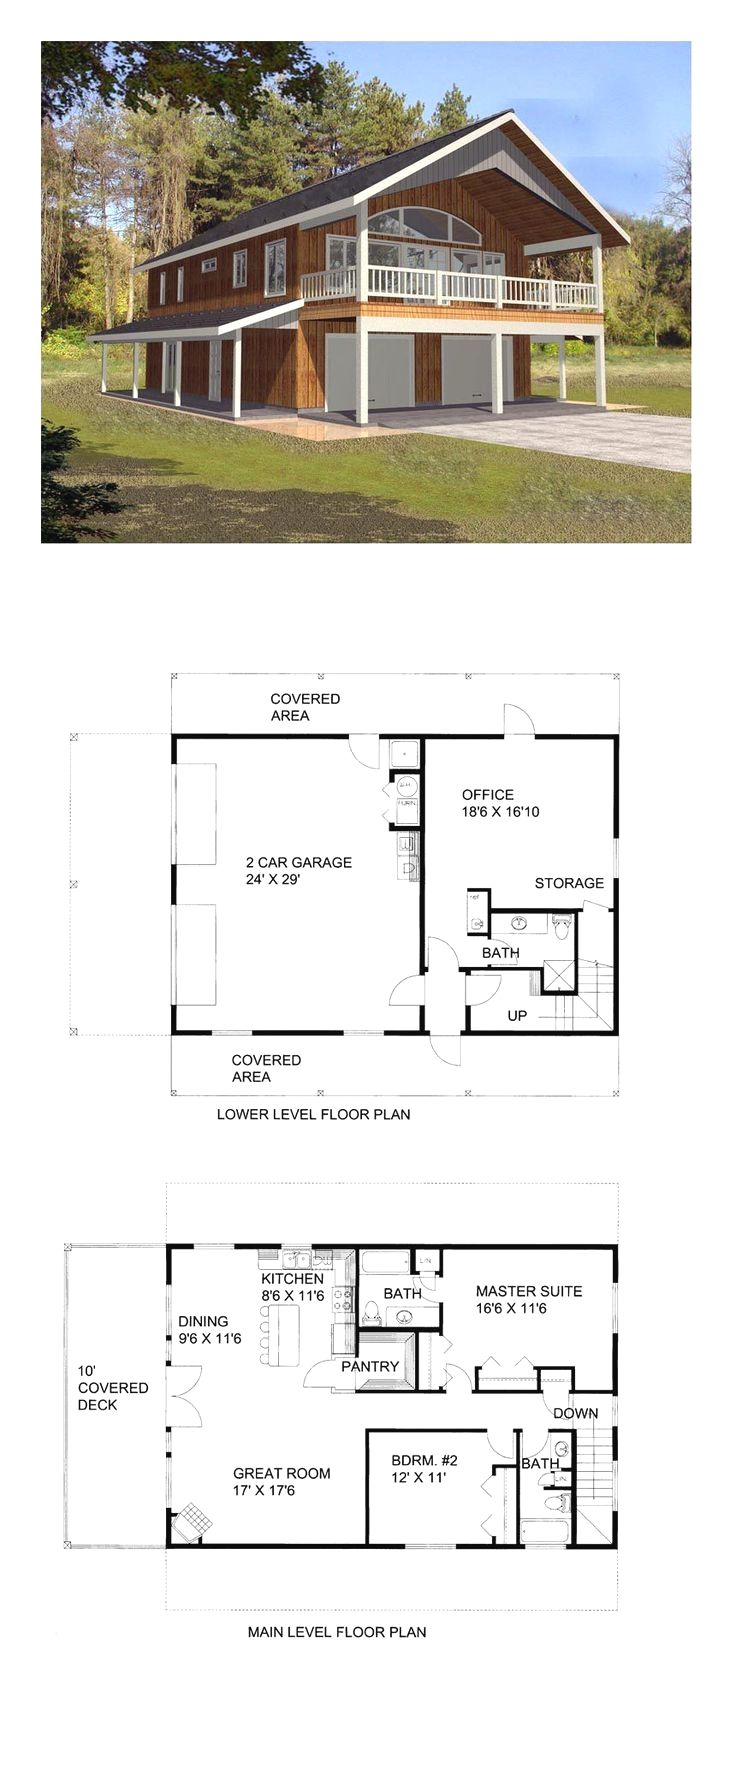 Popular Garage Carriage House Plan With Living Space Over Garage This Is One Of Our Most Popular Carriage House Plans Garage Apartment Plan Garage Floor Plans